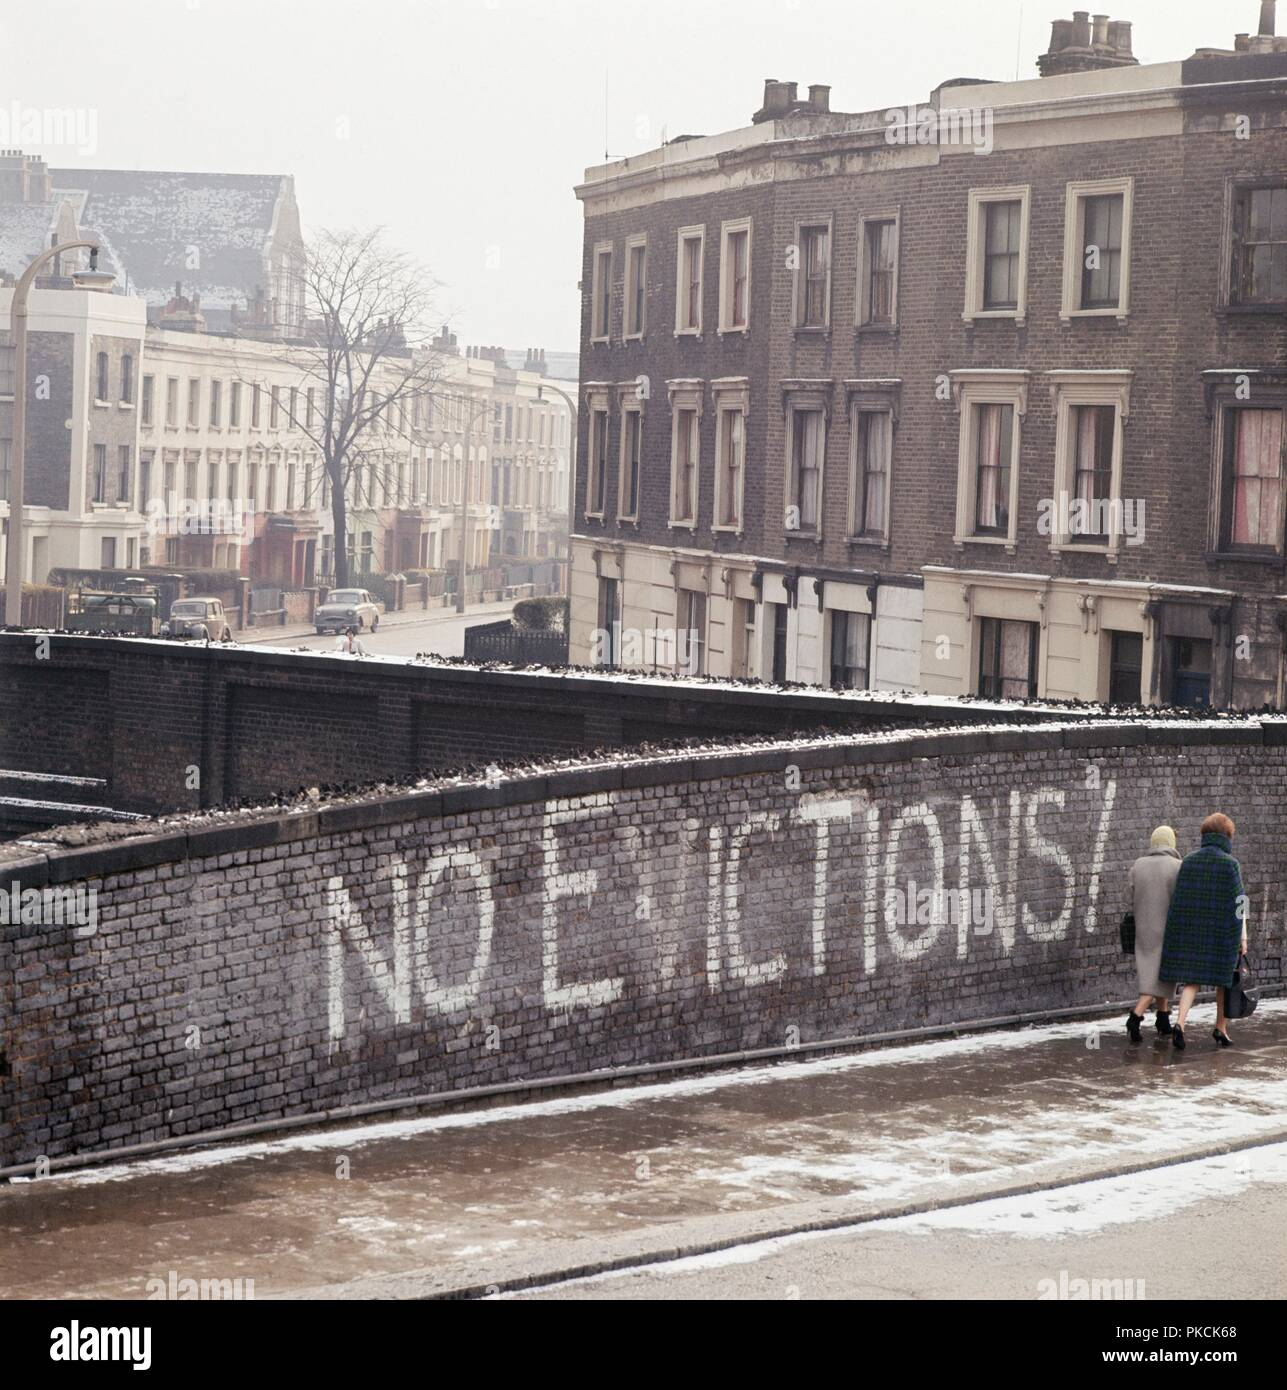 Two women walking past the graffiti no evictions on a railway bridge on grafton road much of the area was bulldozed and redeveloped in the 1960s and